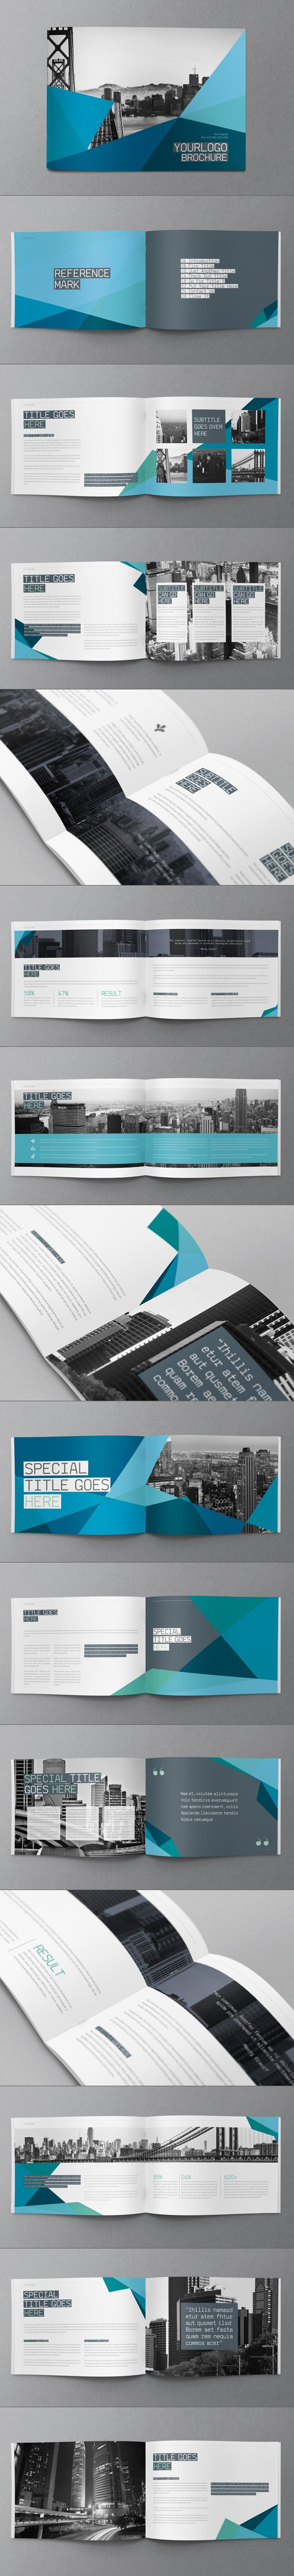 Blue Modern Brochure. Download here: http://graphicriver.net/item/blue-modern-brochure/8852088?ref=abradesign #brochure #design